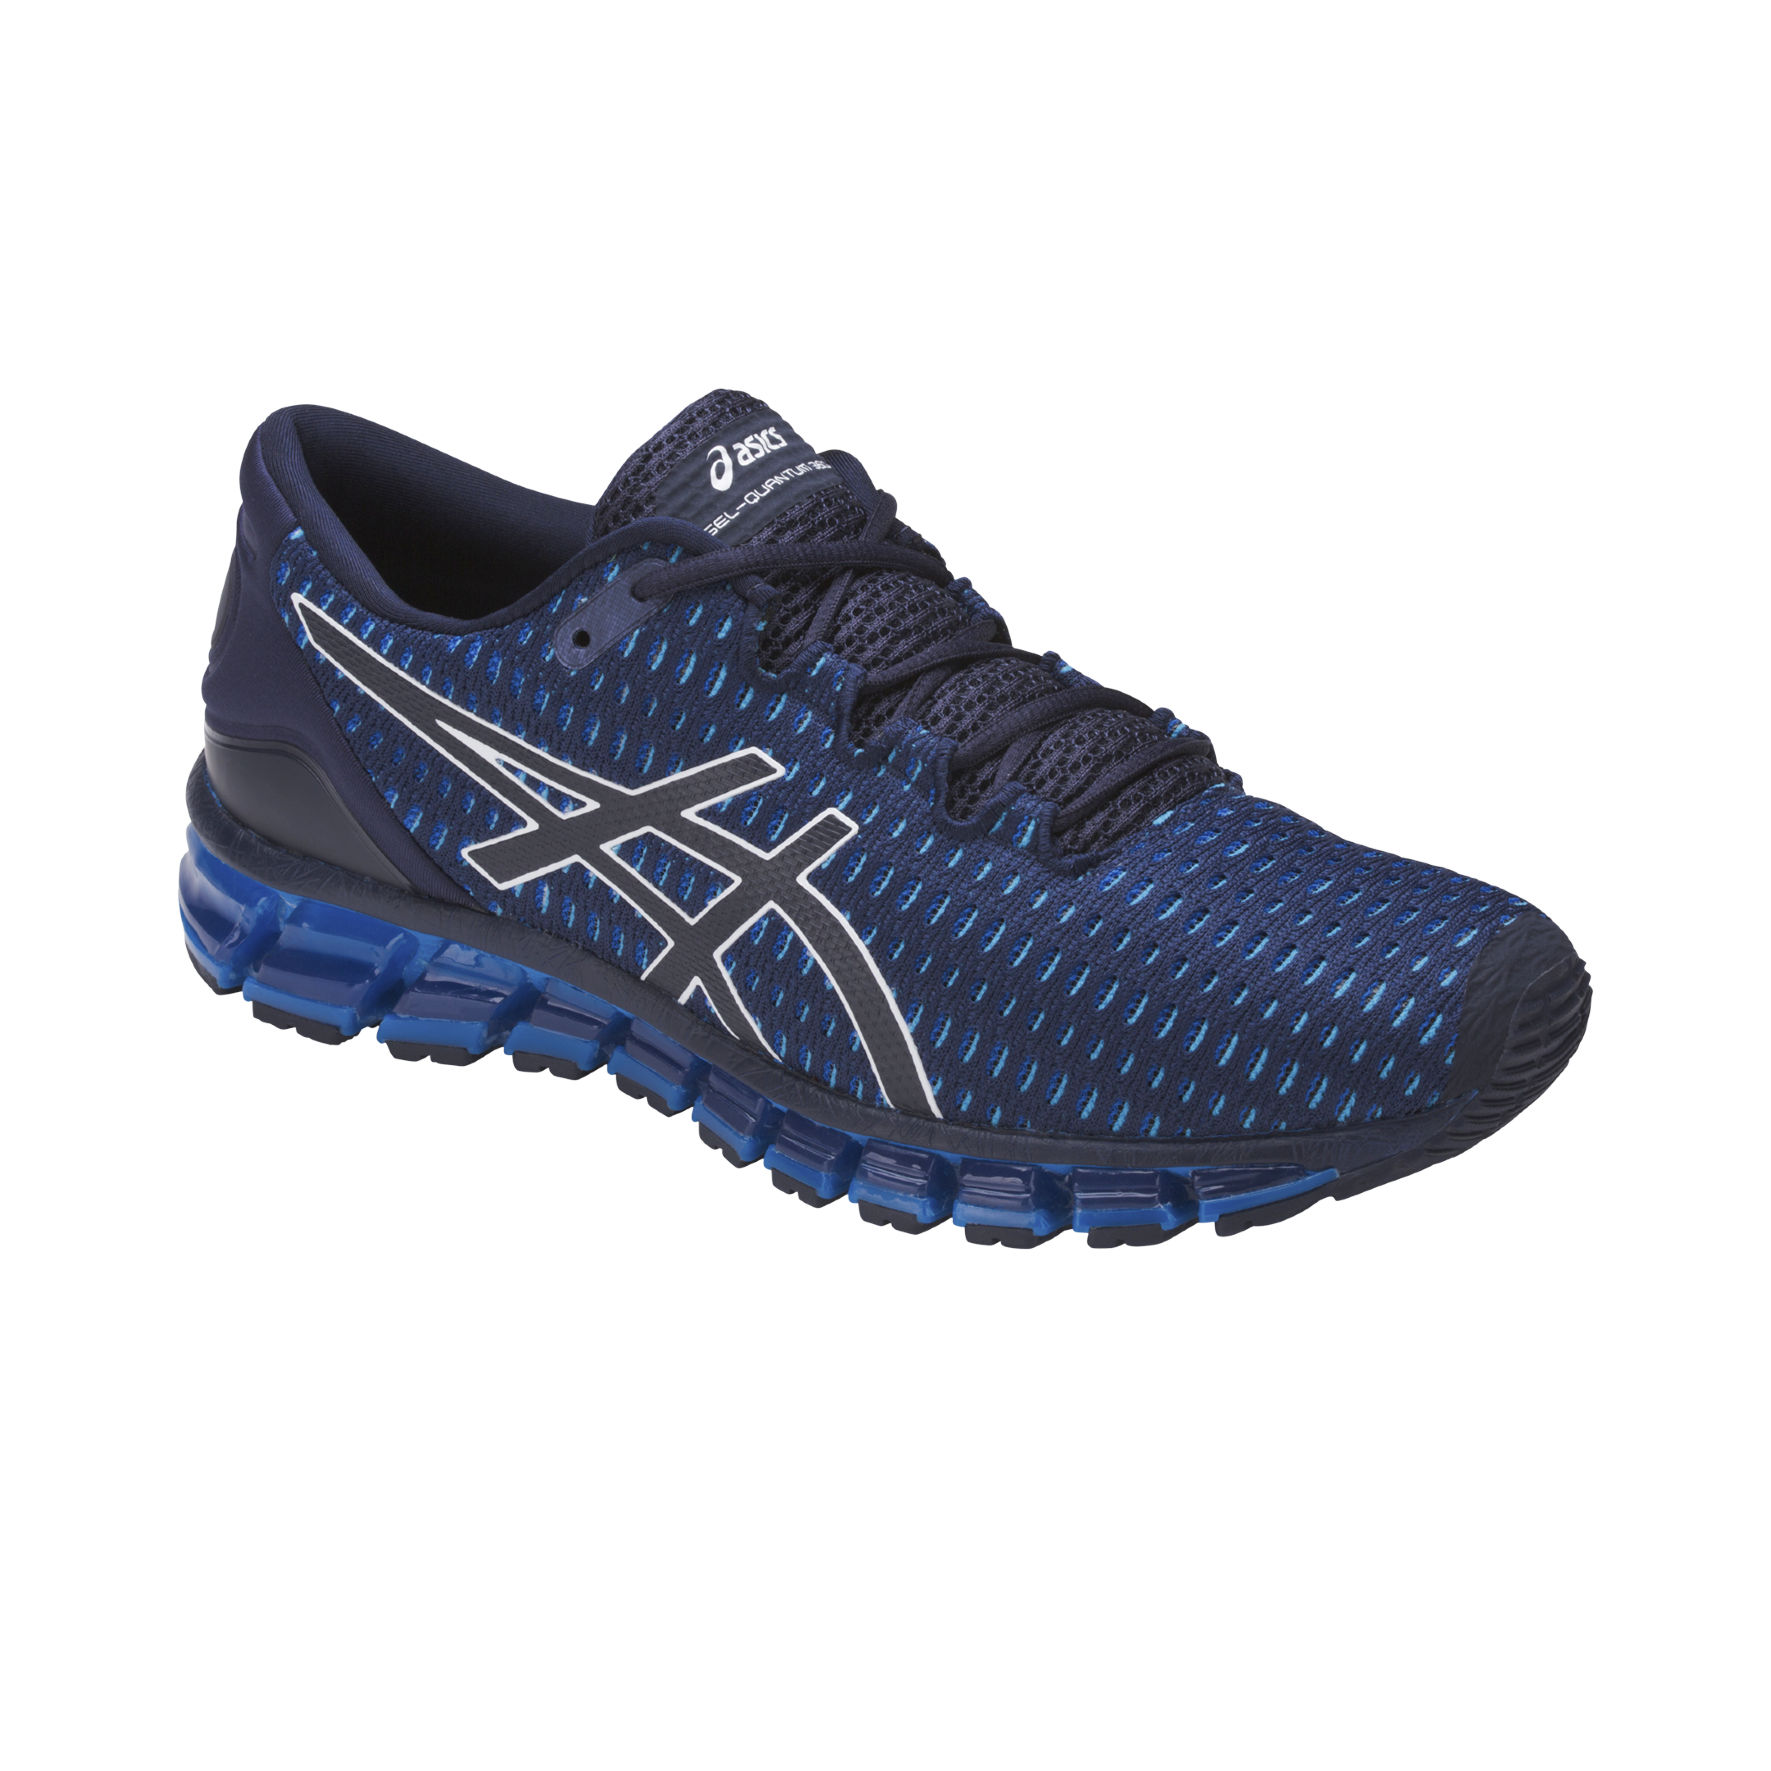 Asics Gel Quantum 360 Shift in Dunkelblau